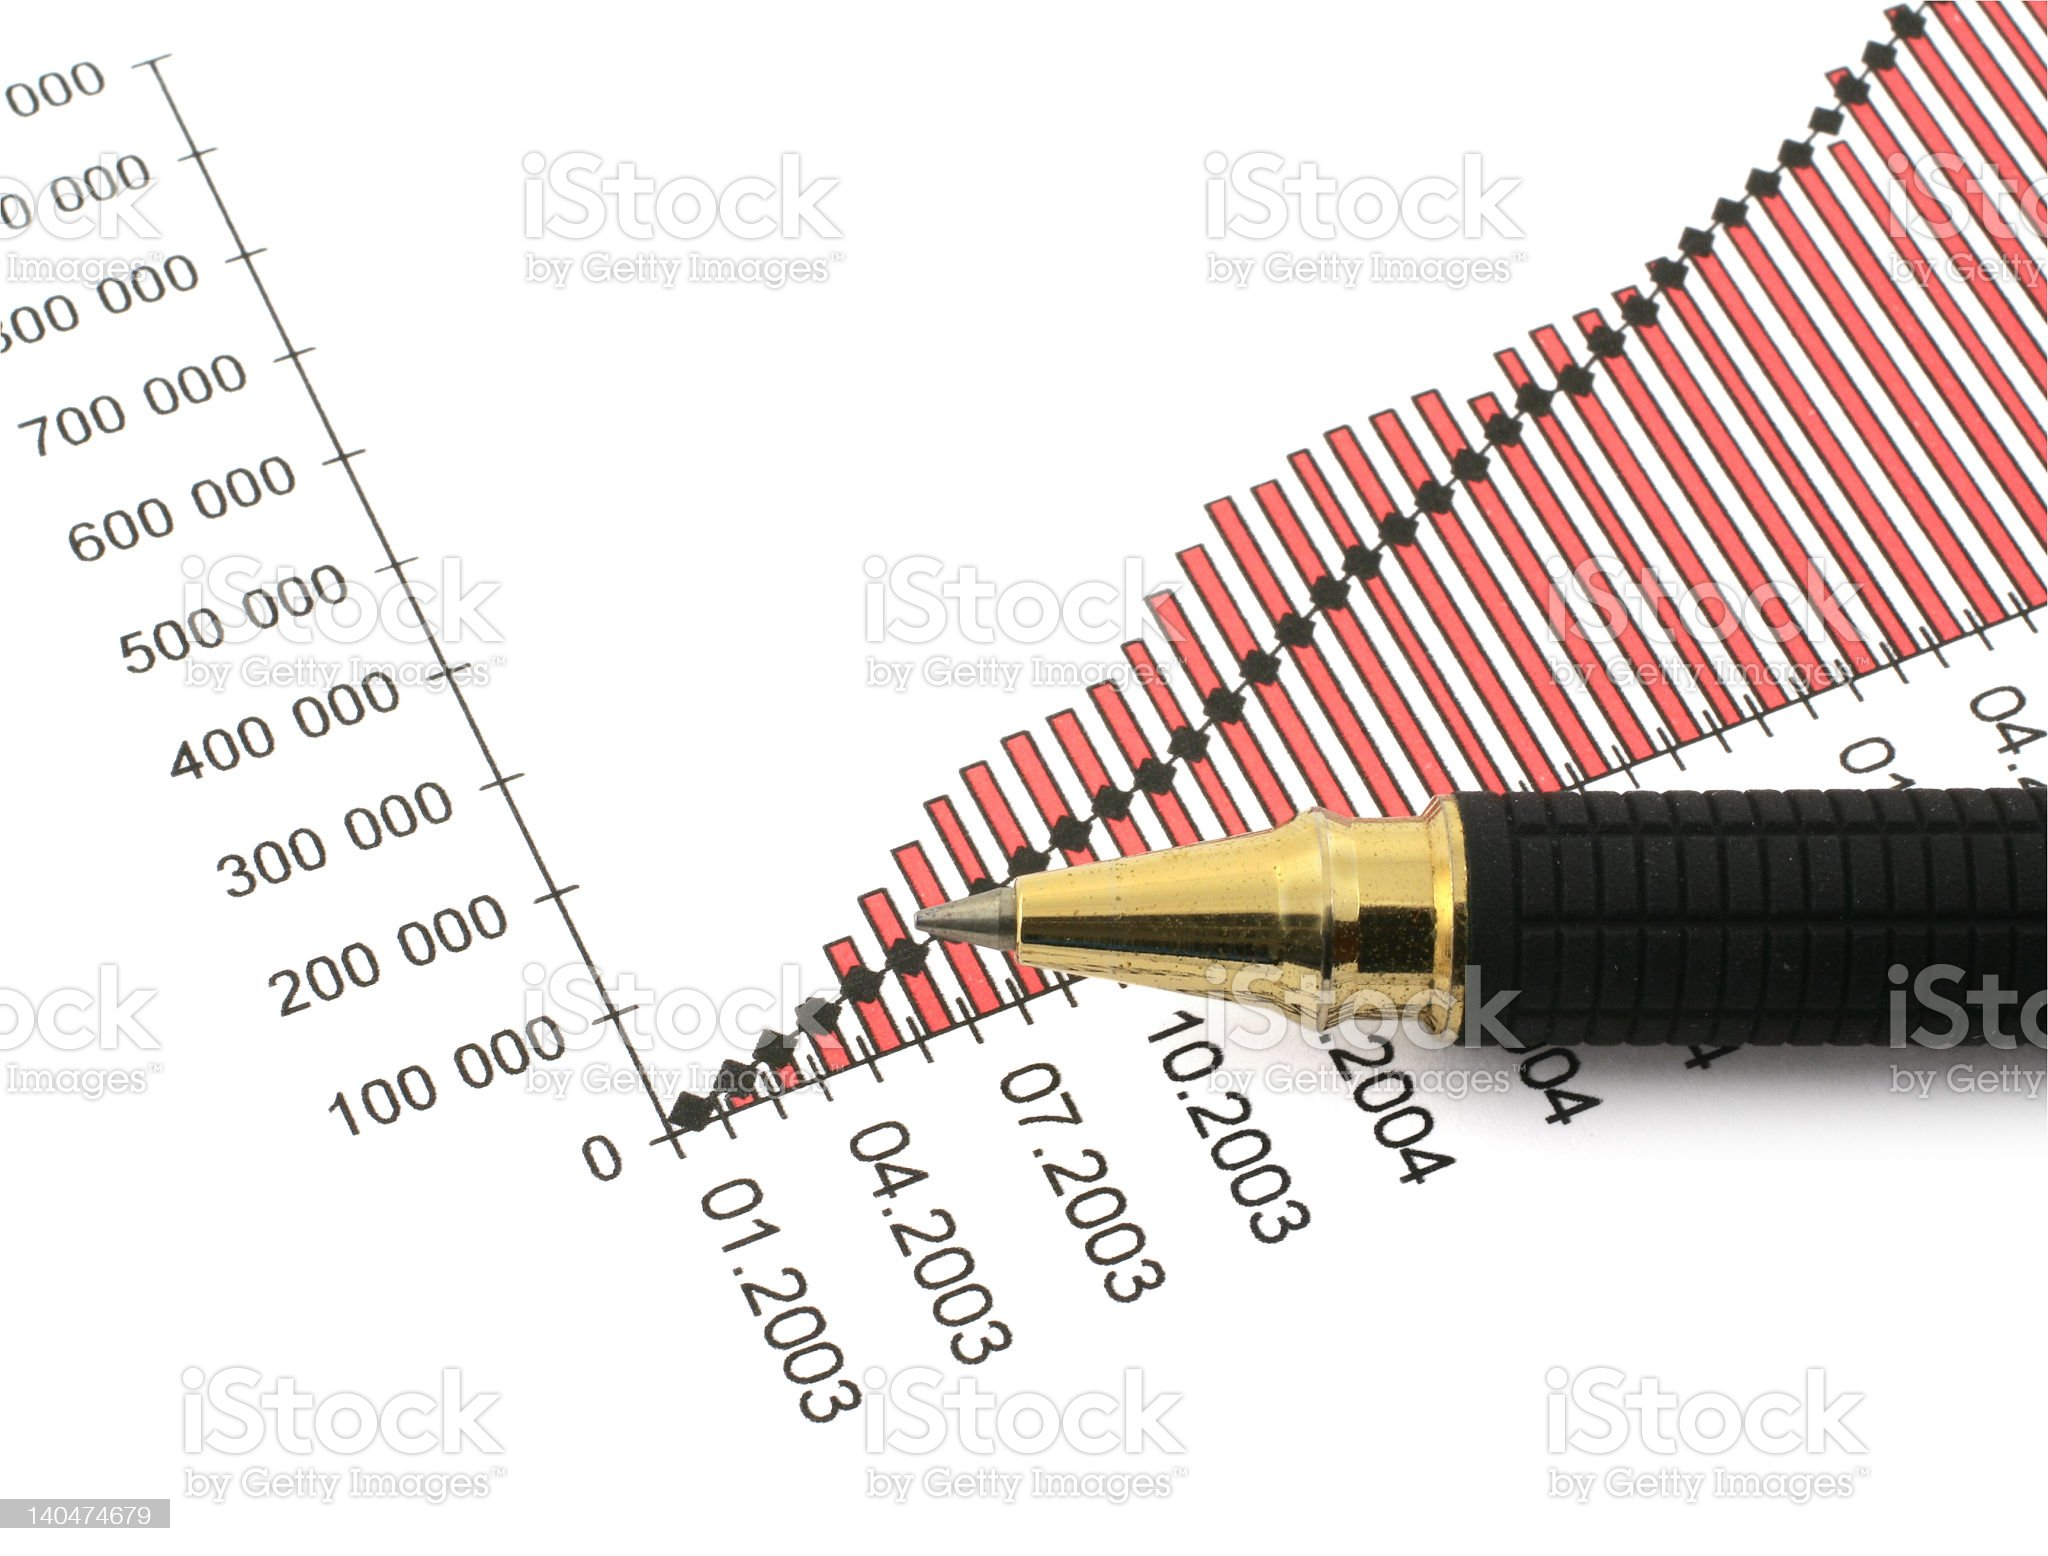 pen tip and business chart #3 royalty-free stock photo